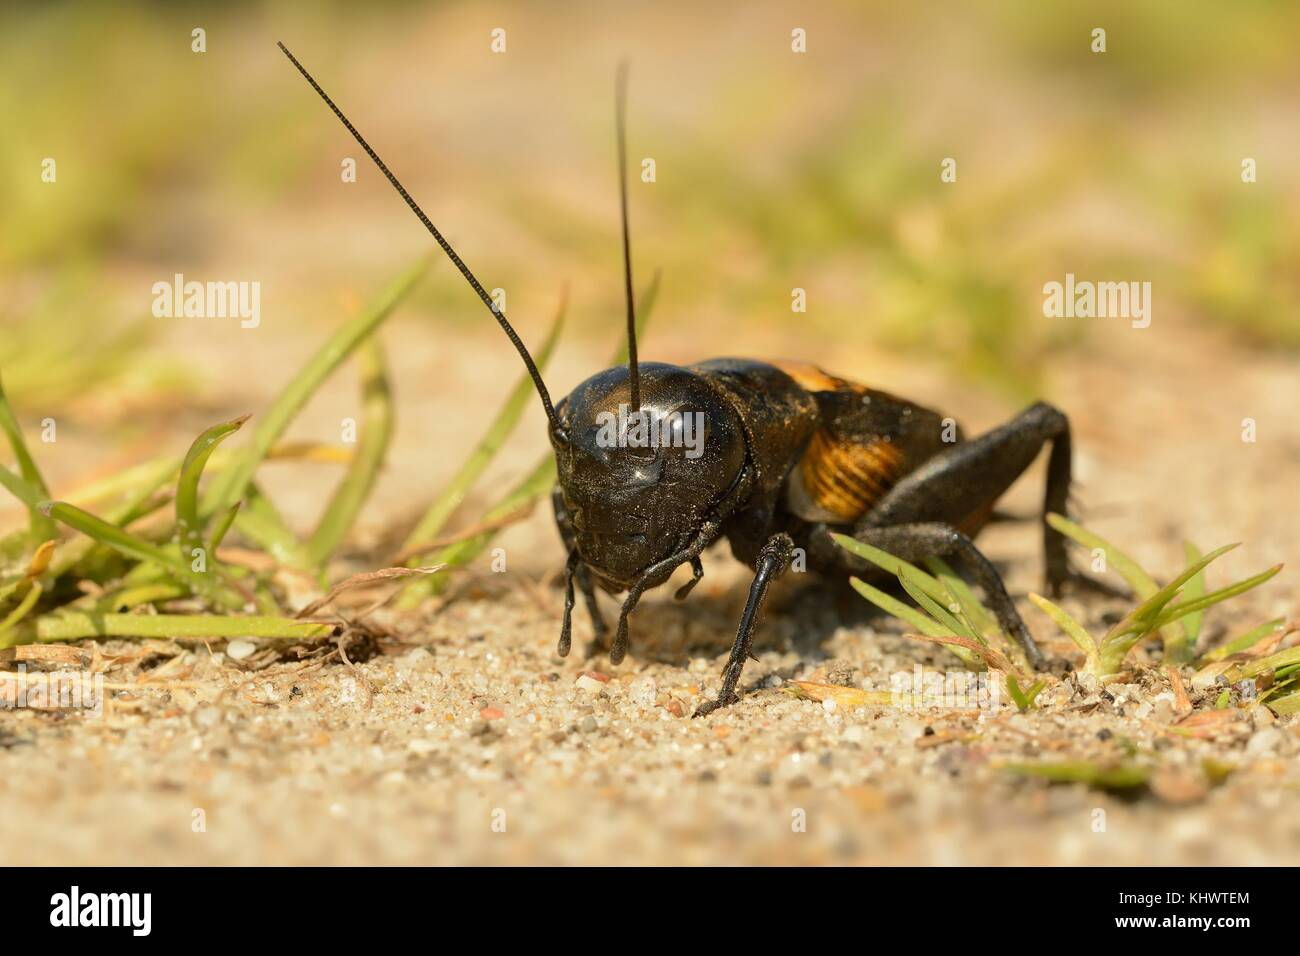 The field cricket - Gryllus campestris on the eath. Black cricket on the brown bright clay. - Stock Image